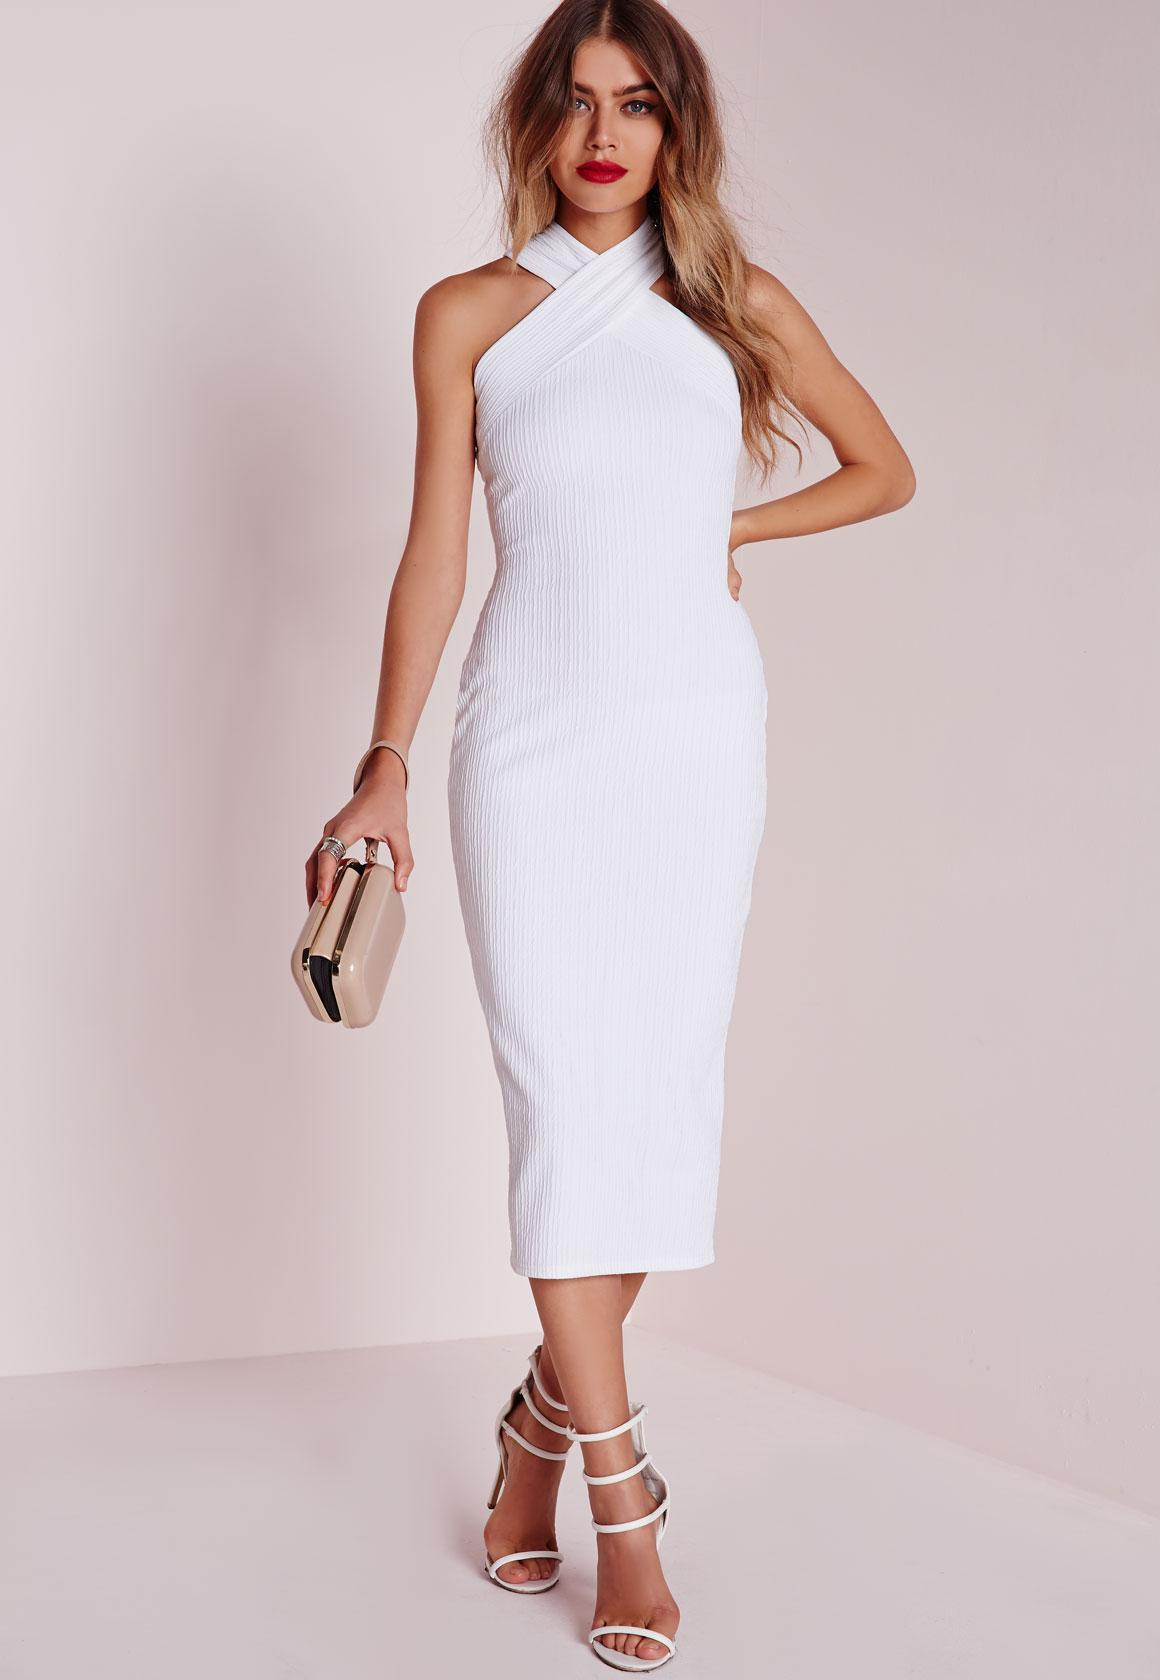 c762ee4ea9f7 Textured Midi Dress White